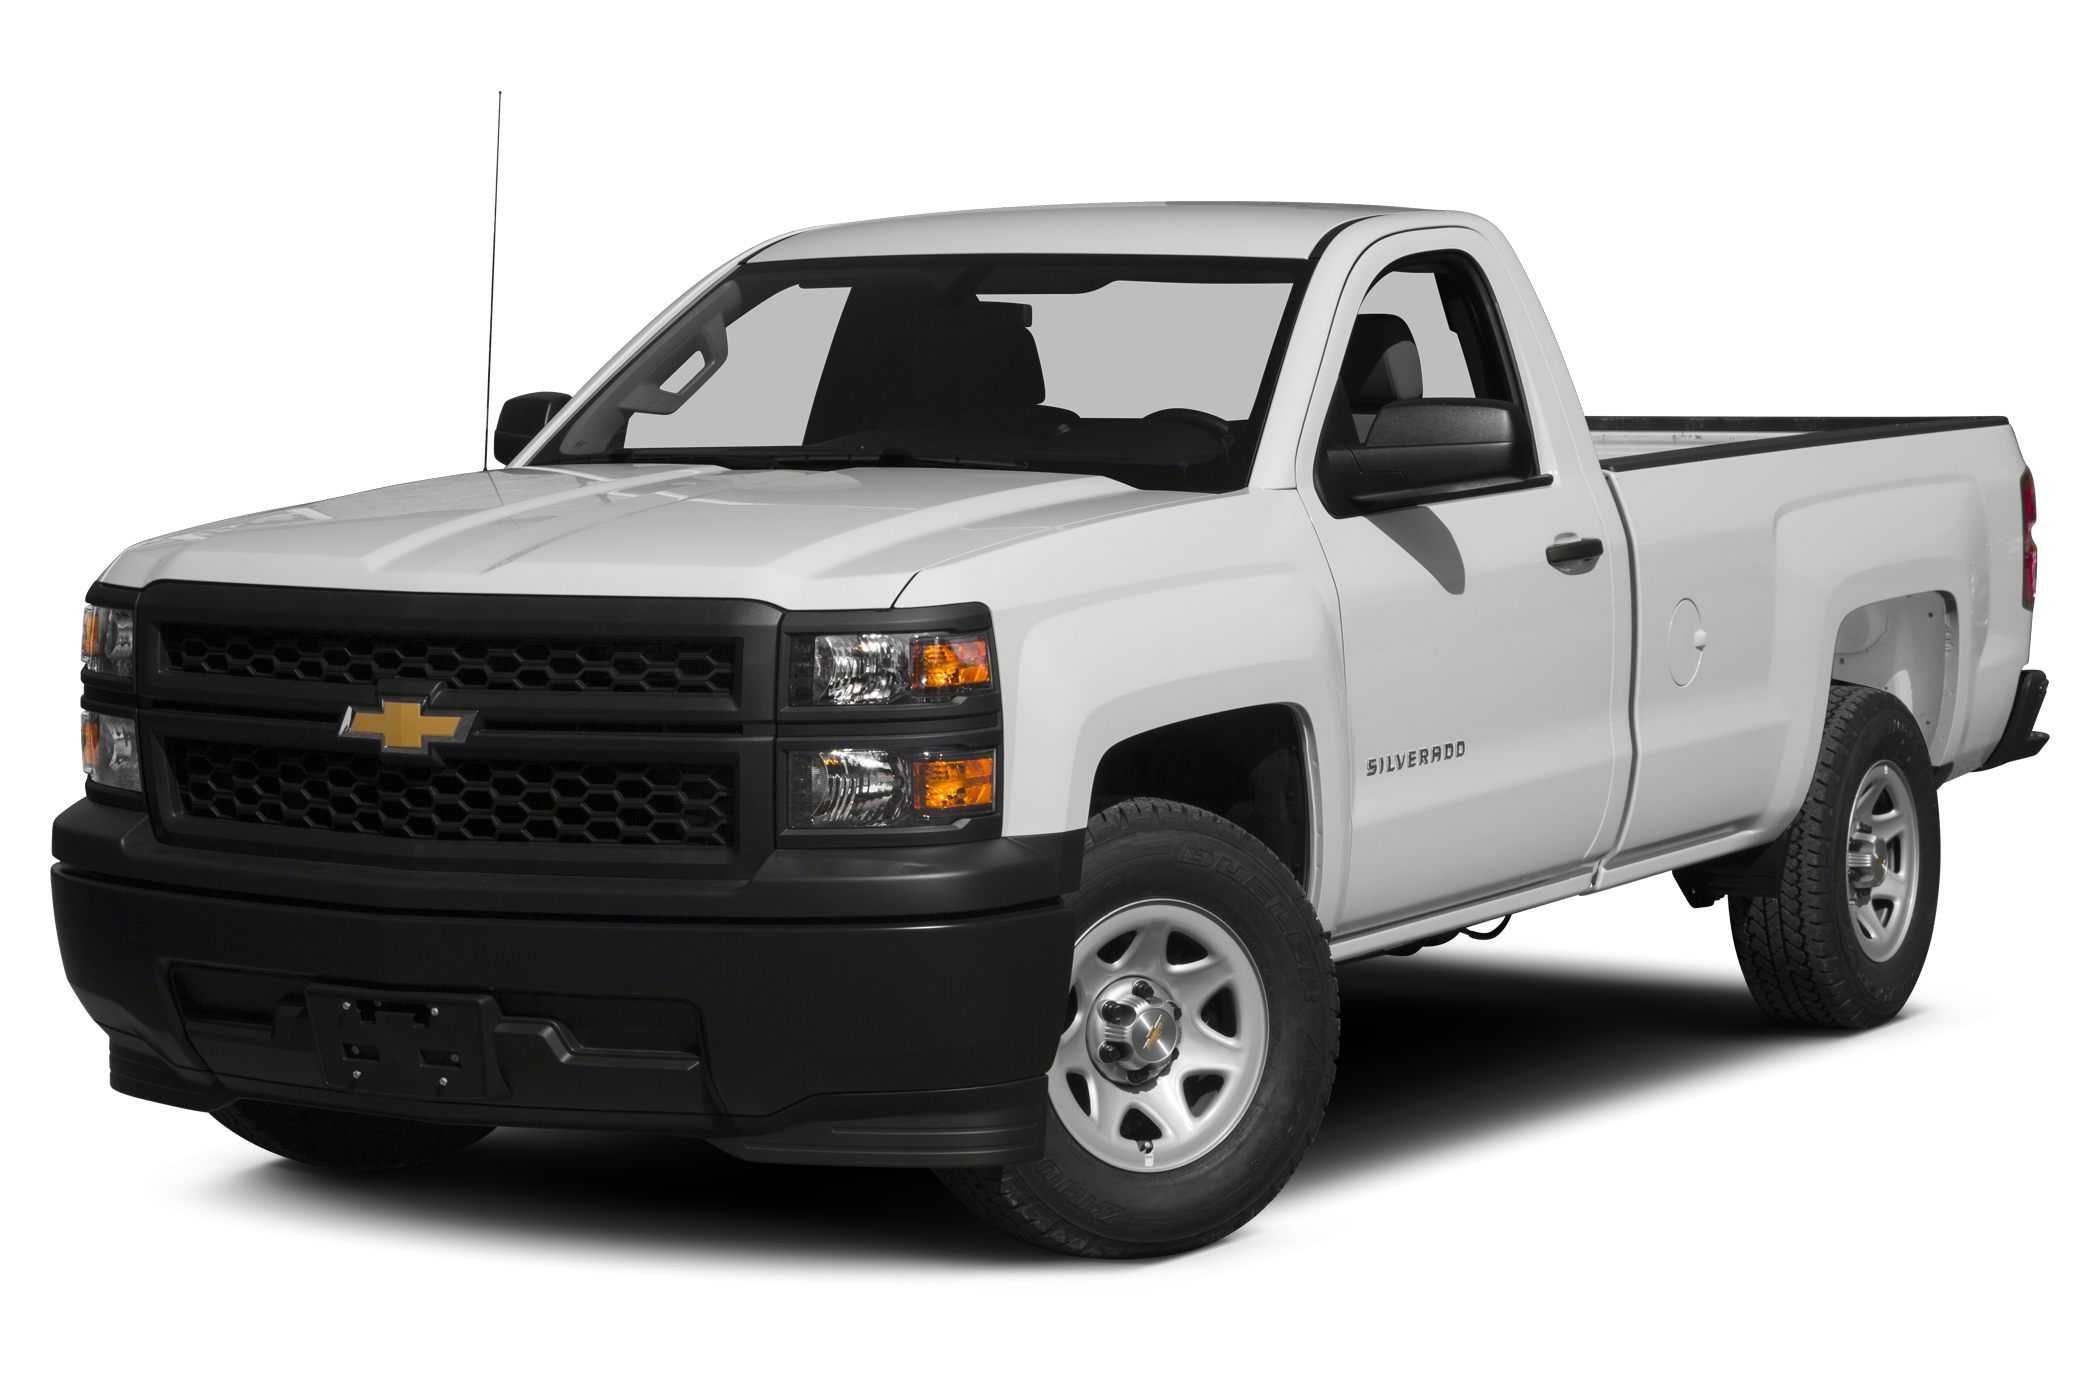 2015 Chevrolet Silverado 1500 1LT Extended Cab Pickup for sale in Marianna for $39,840 with 0 miles.